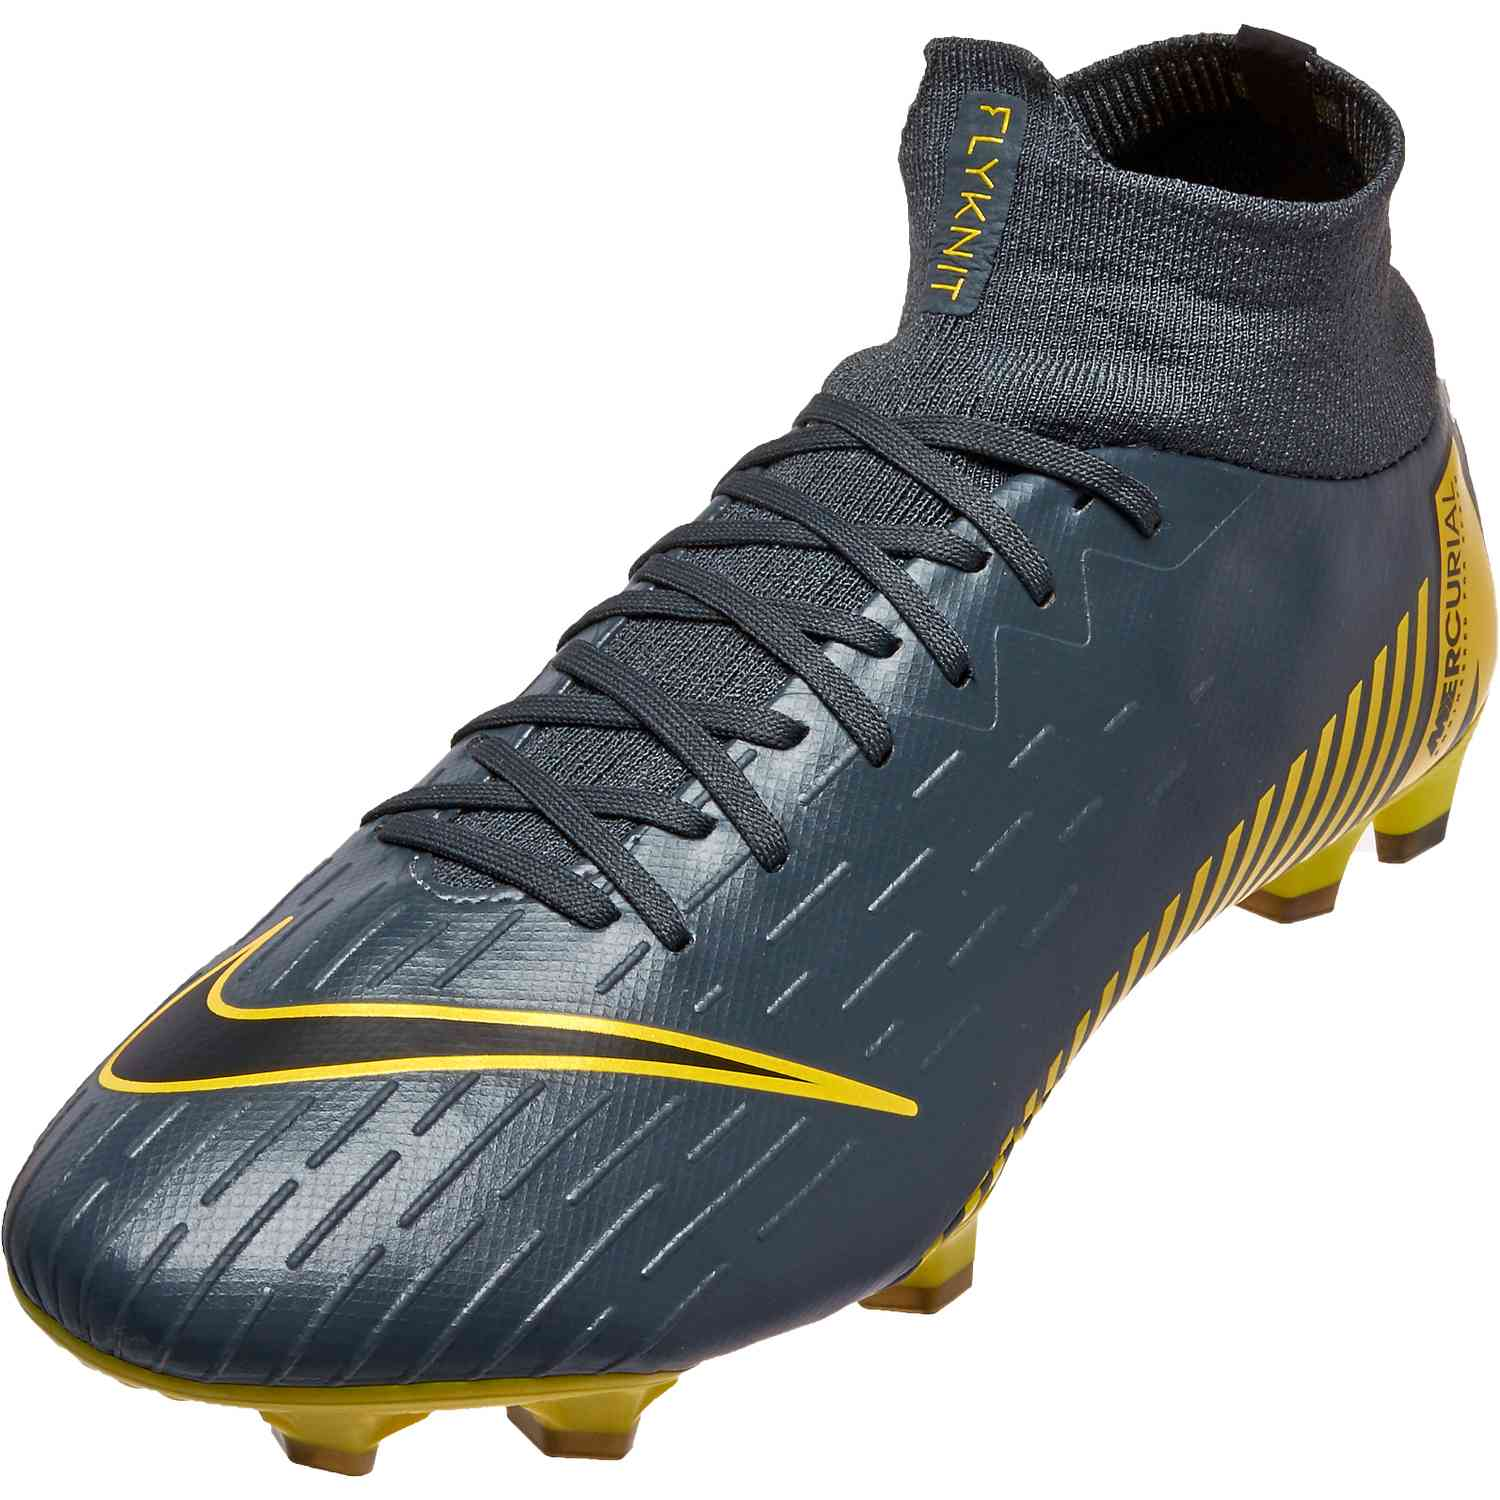 ee053e7a7 Nike Mercurial Superfly 6 Pro FG - Game Over - SoccerPro